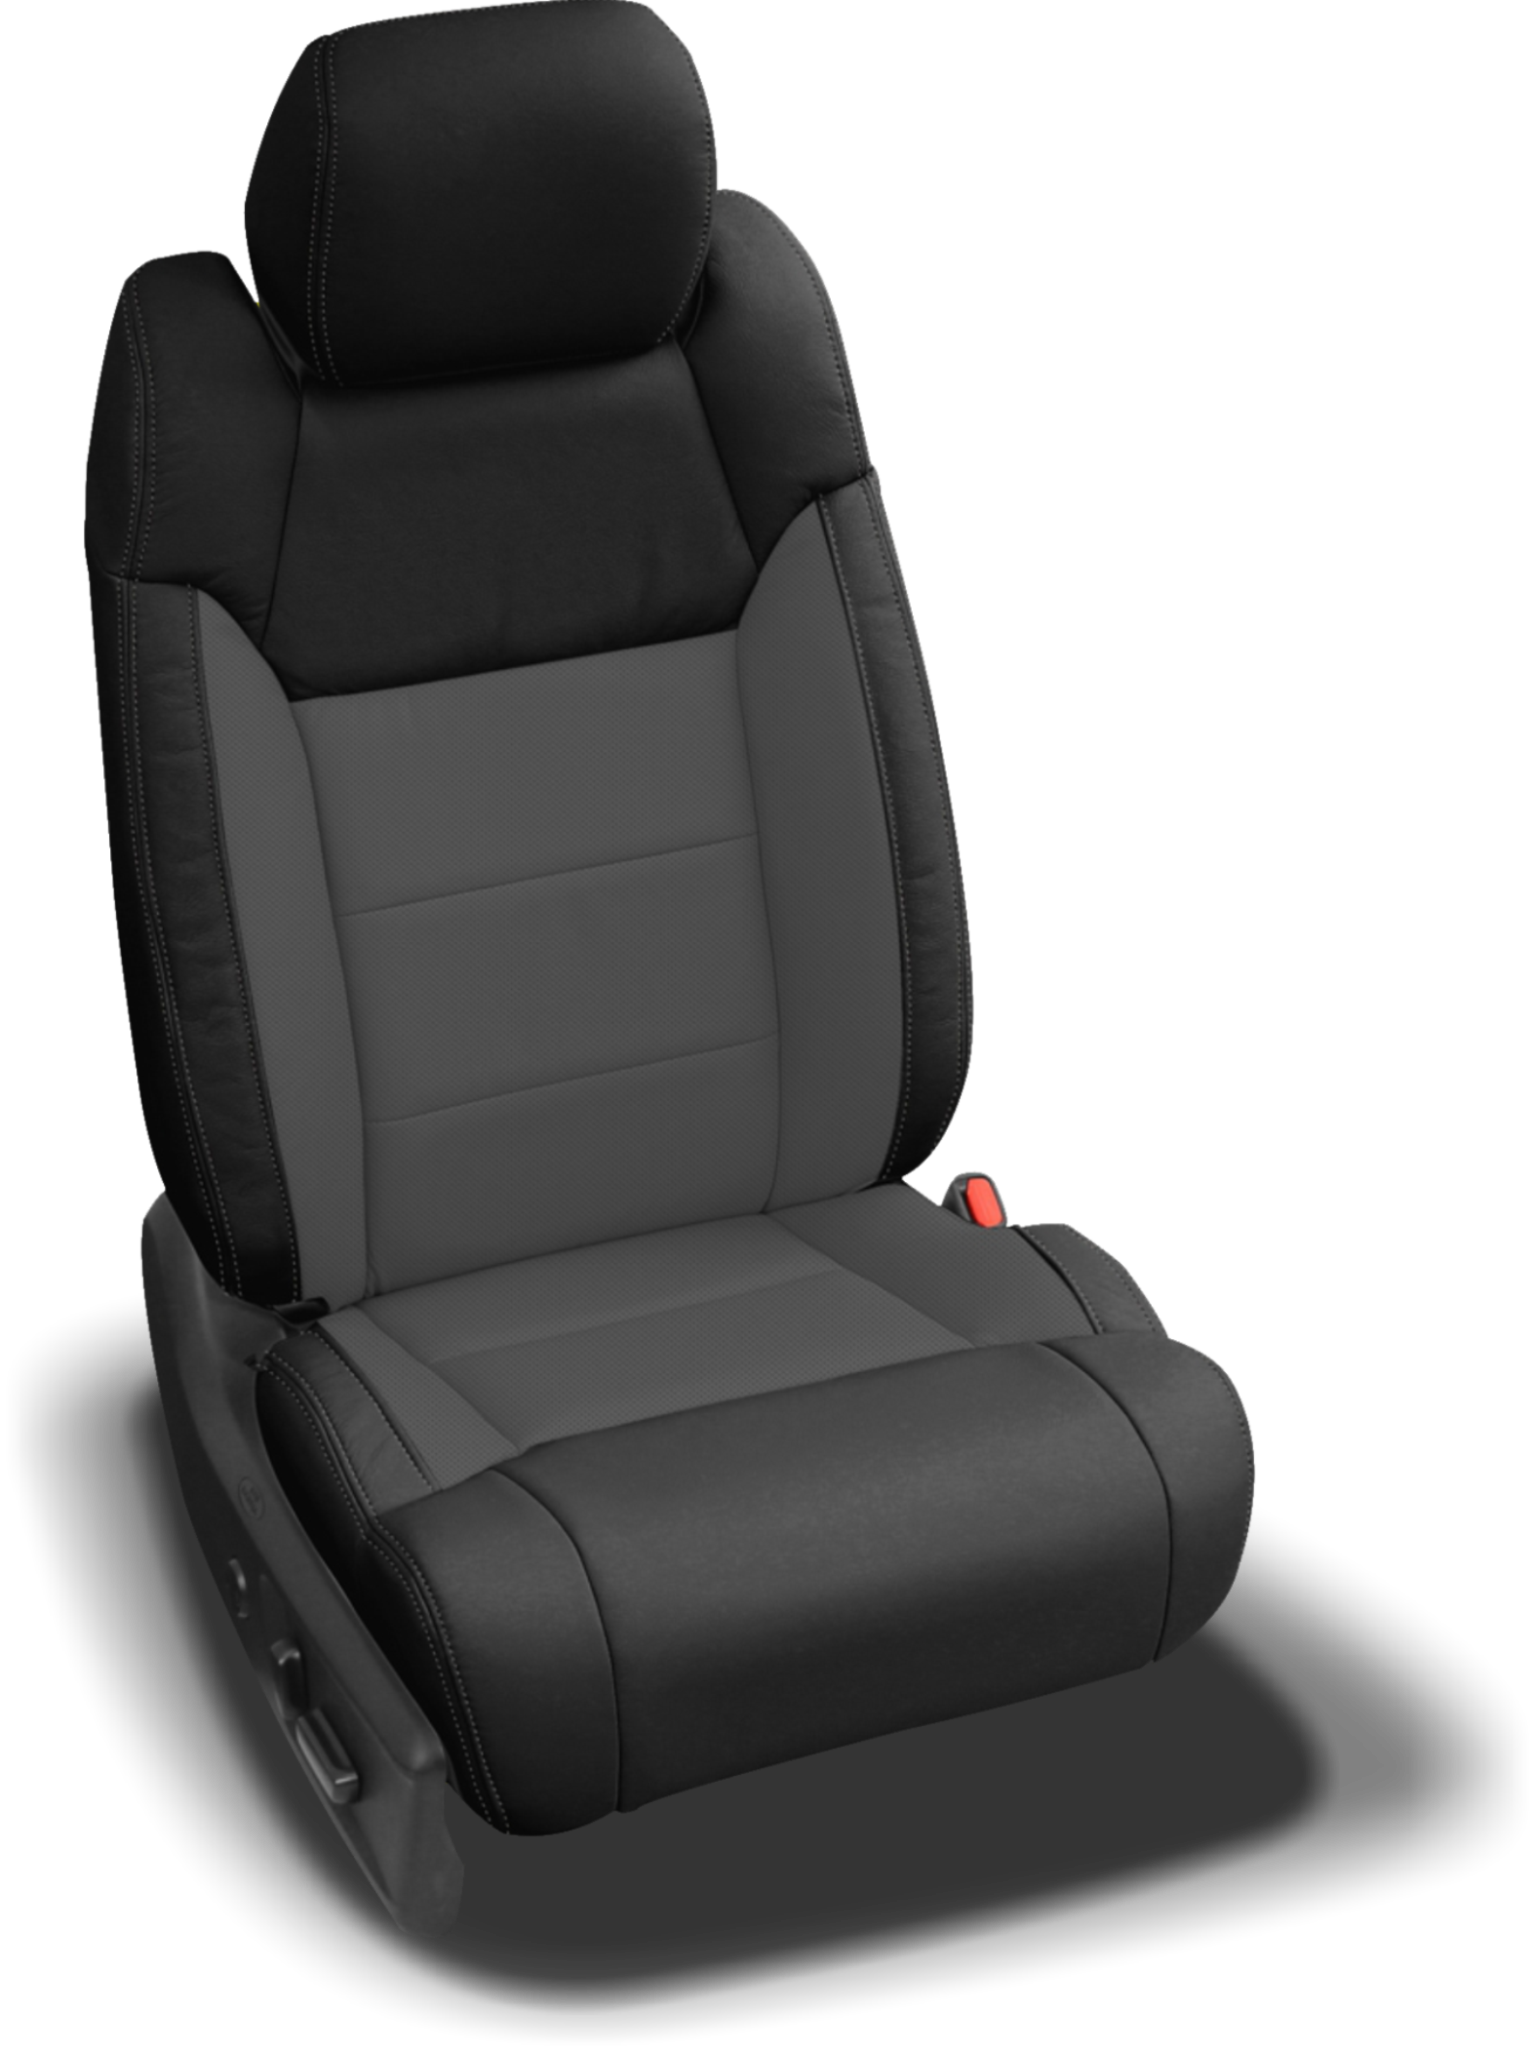 custom car seat upholstery car seat reupholstery service. Black Bedroom Furniture Sets. Home Design Ideas